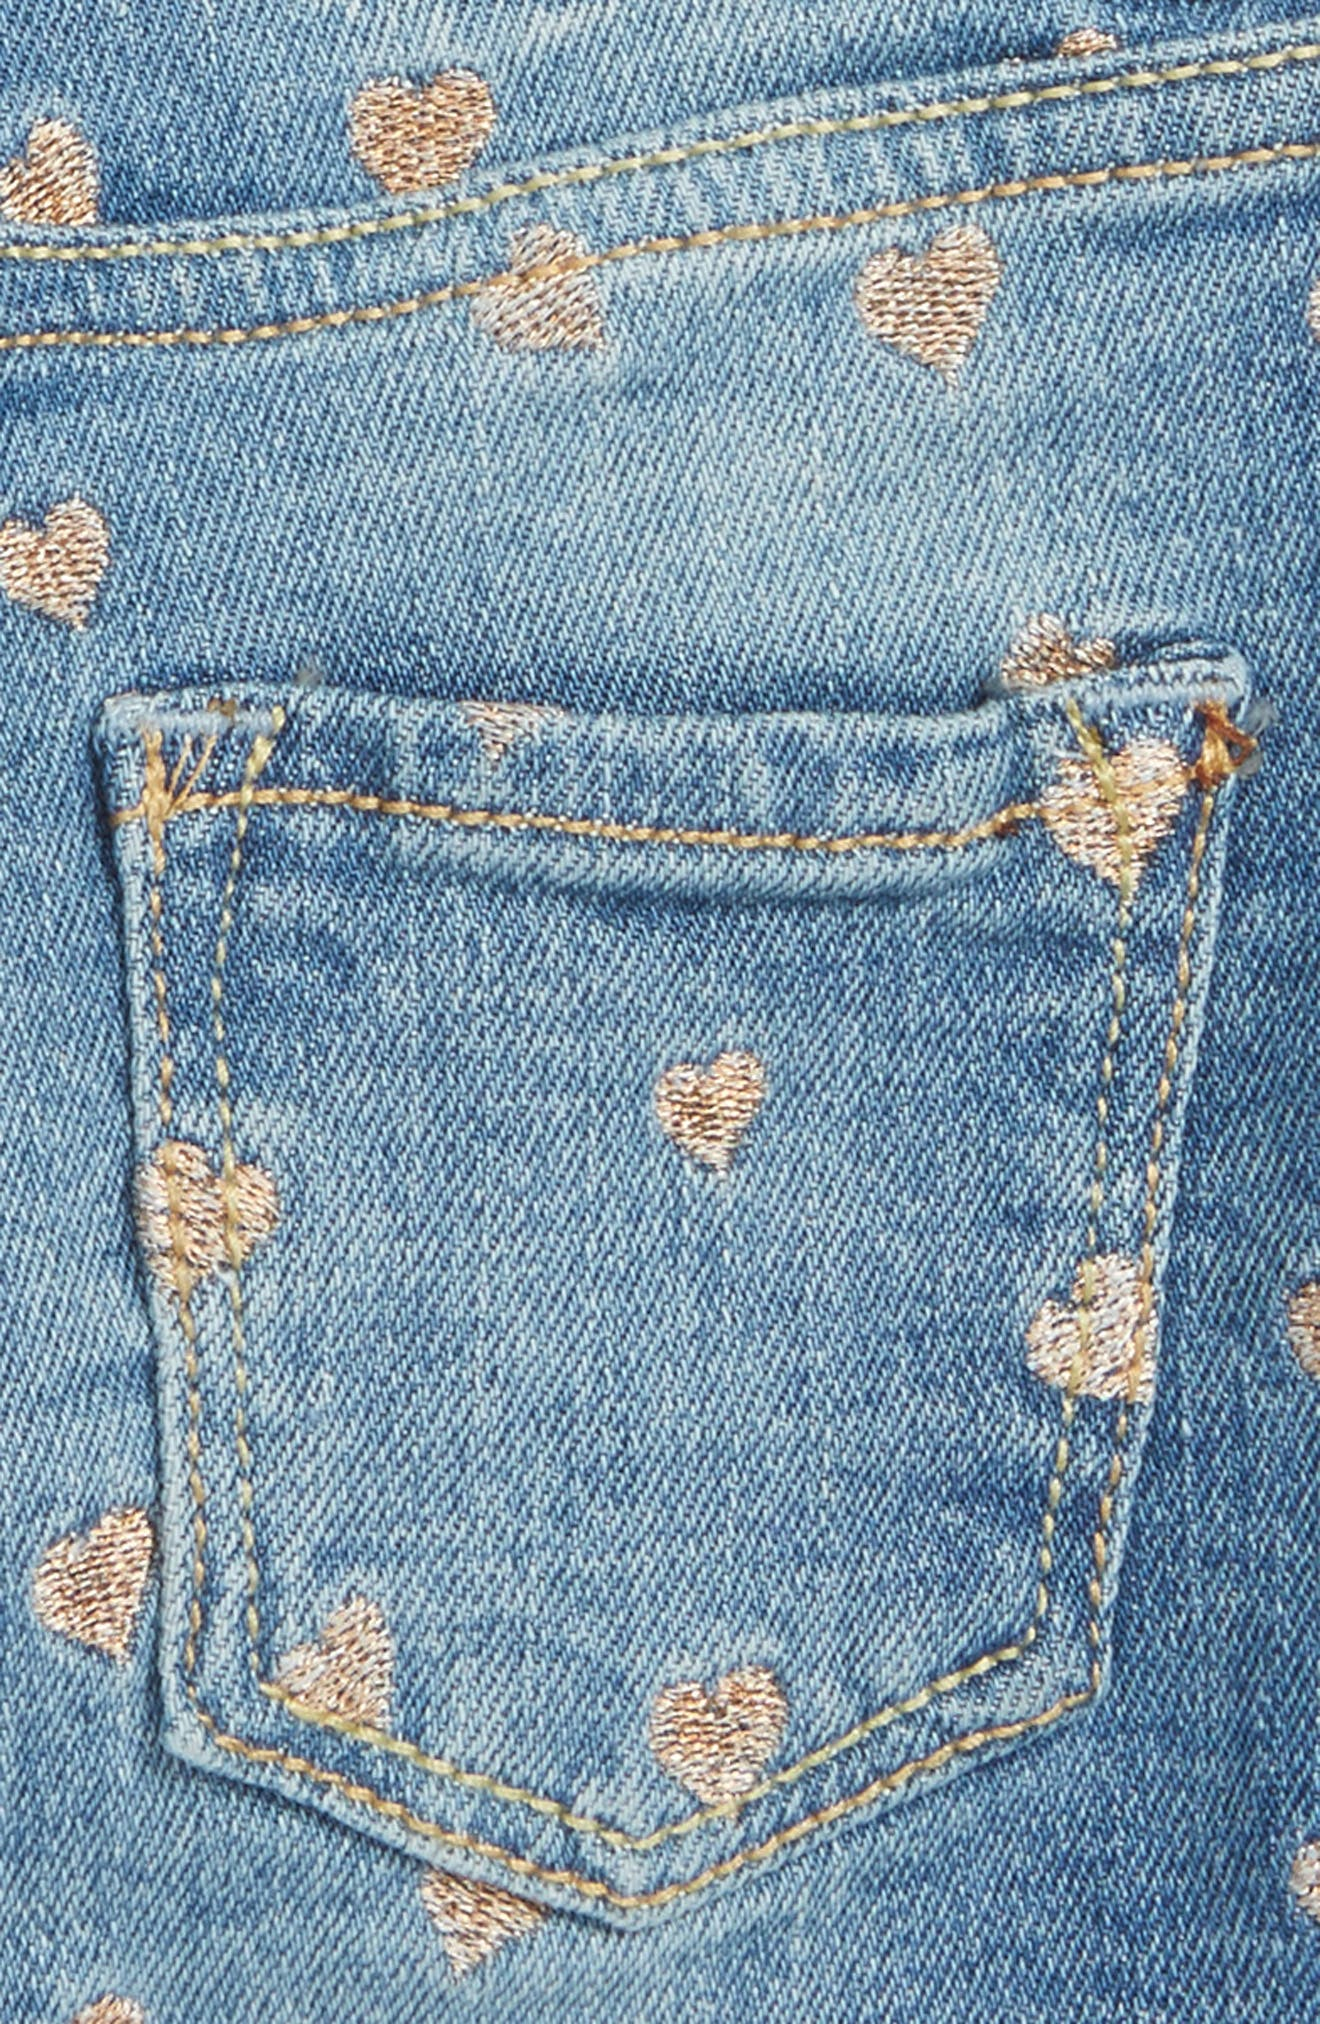 Mini Heart Cutoff Denim Shorts,                             Alternate thumbnail 3, color,